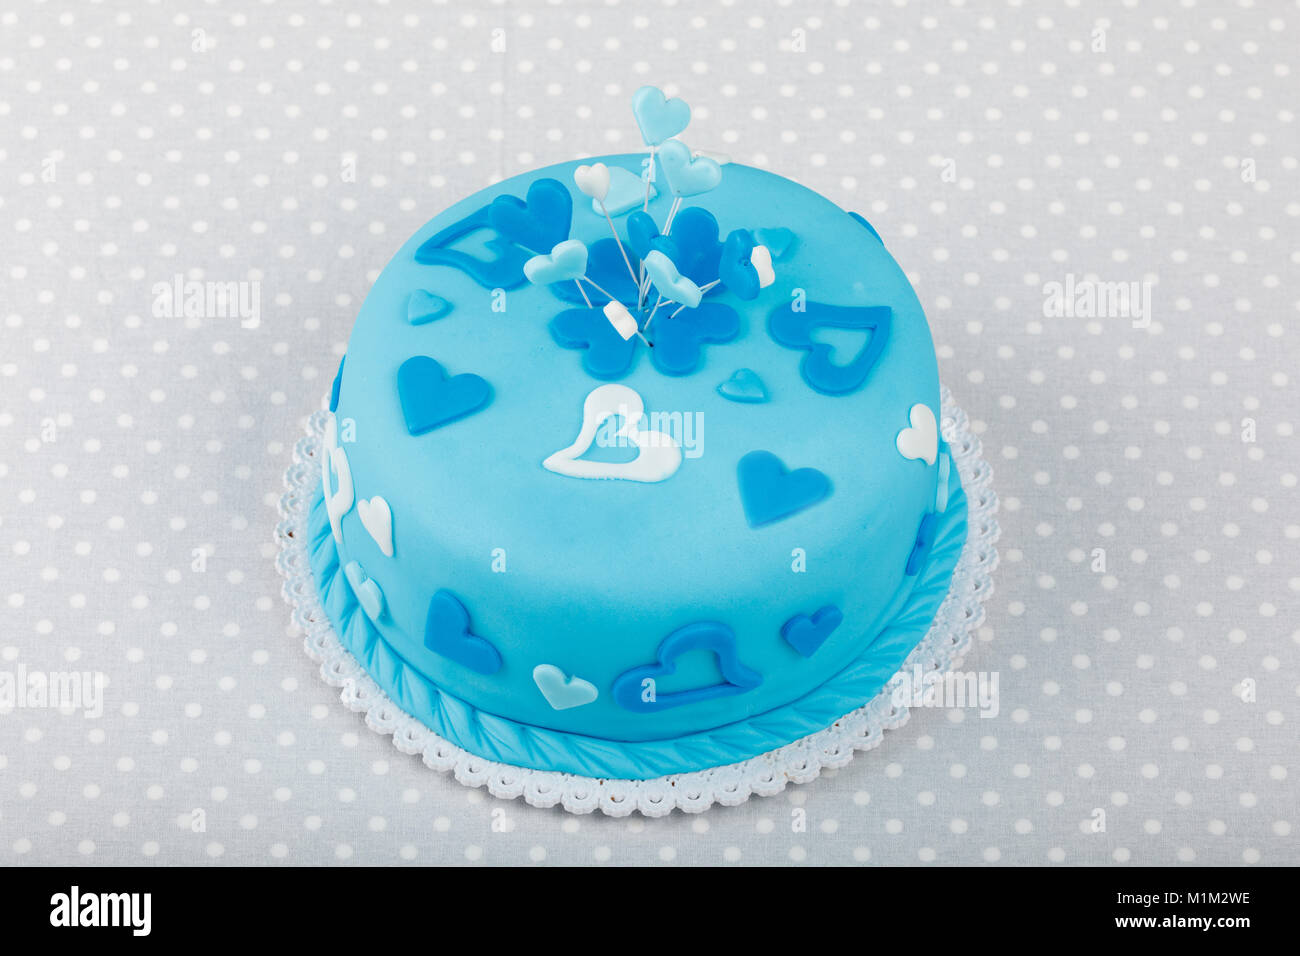 Groovy Birthday Valentine Cake In Blue Color Love Concept Stock Photo Personalised Birthday Cards Cominlily Jamesorg